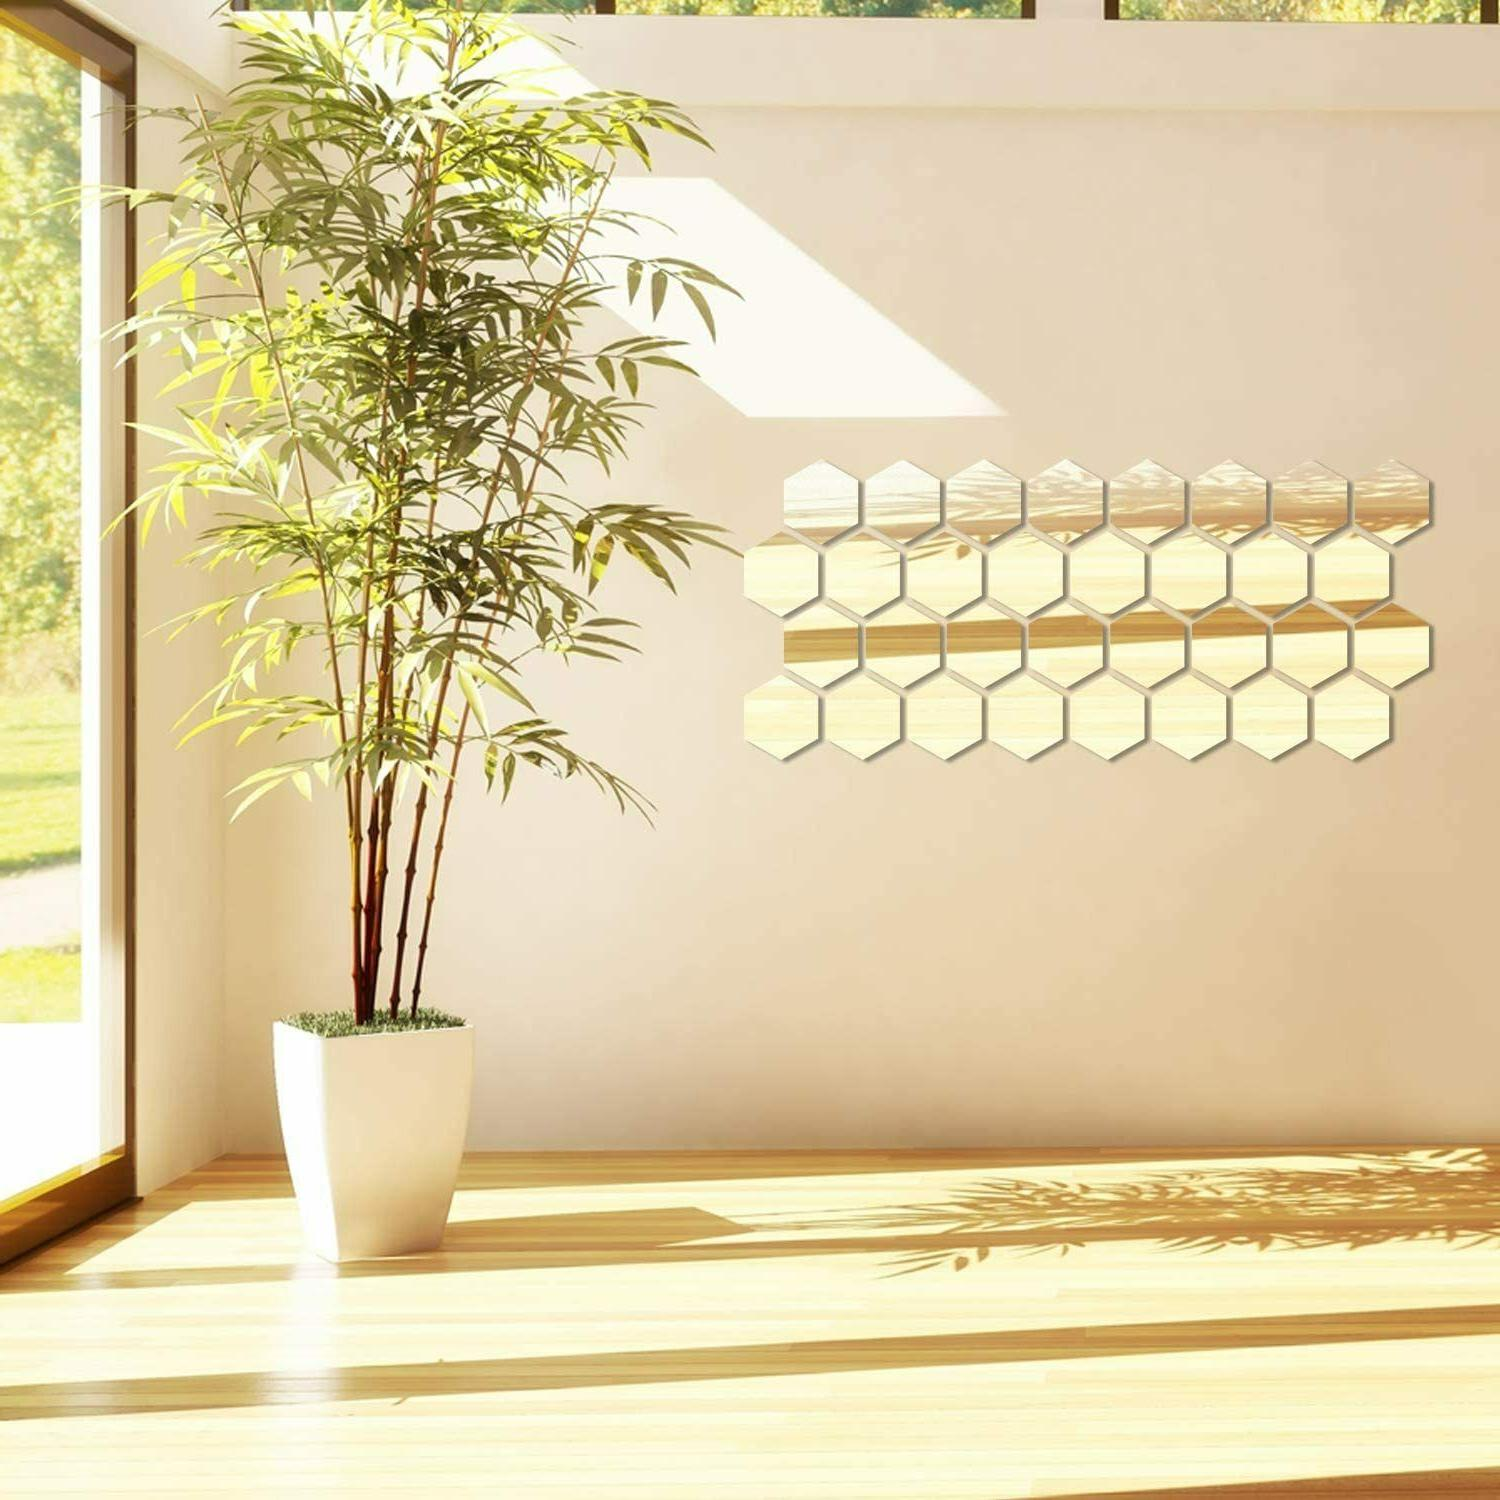 12Pcs Acrylic Mirror Wall Stickers Mural Decal Home Decor DIY